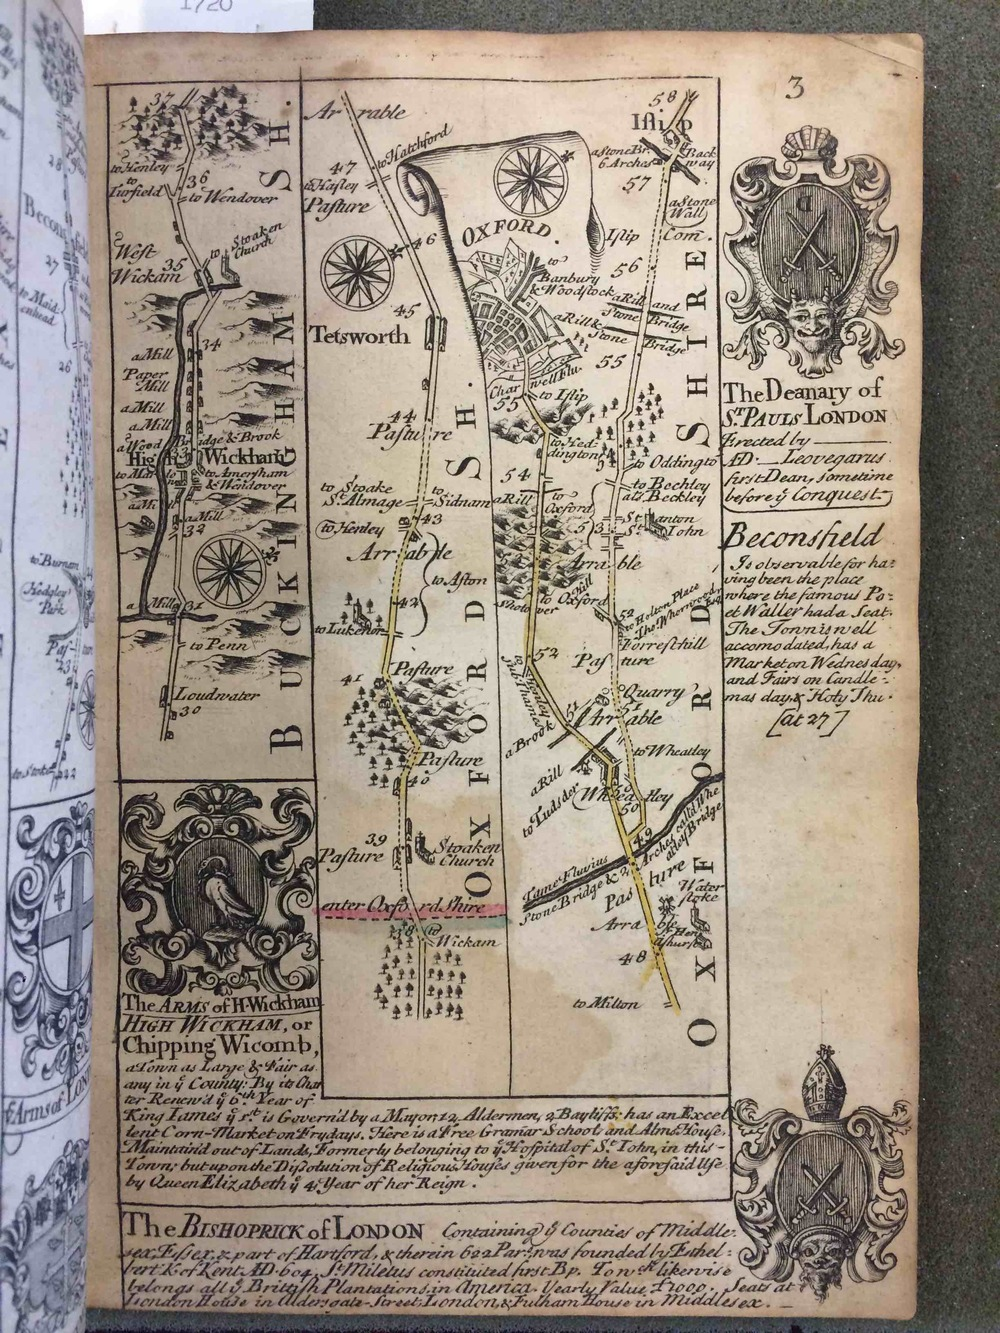 From the Oxfordshire county line to Oxford, a straight path.  John Ogilby, Britannia Depicta (London, 1720).  Sights and points of interest, like digressions, are located in the margins.